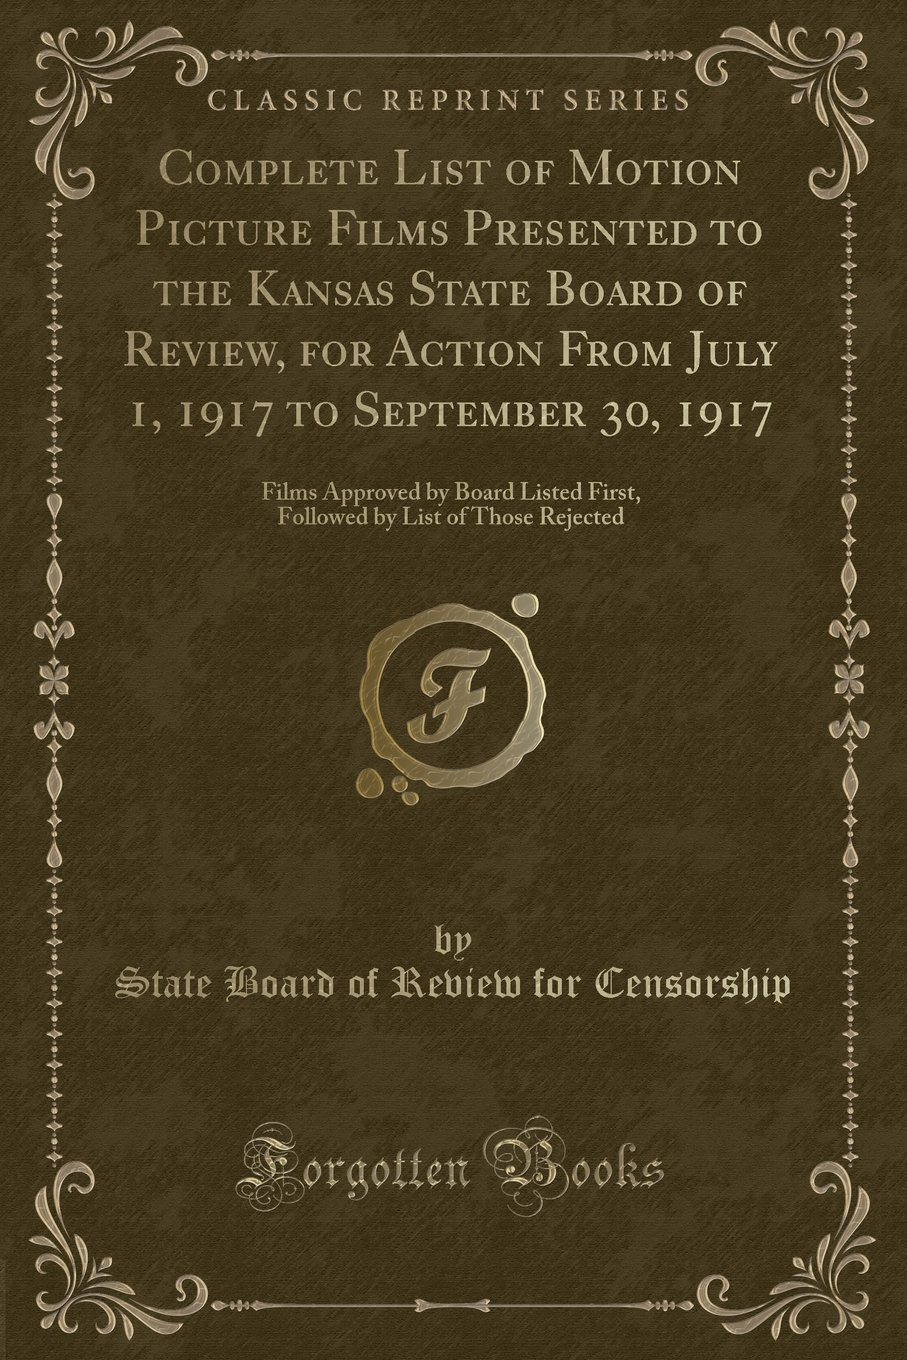 Complete List of Motion Picture Films Presented to the Kansas State Board of Review, for Action From July 1, 1917 to September 30, 1917: Films ... by List of Those Rejected (Classic Reprint) ebook